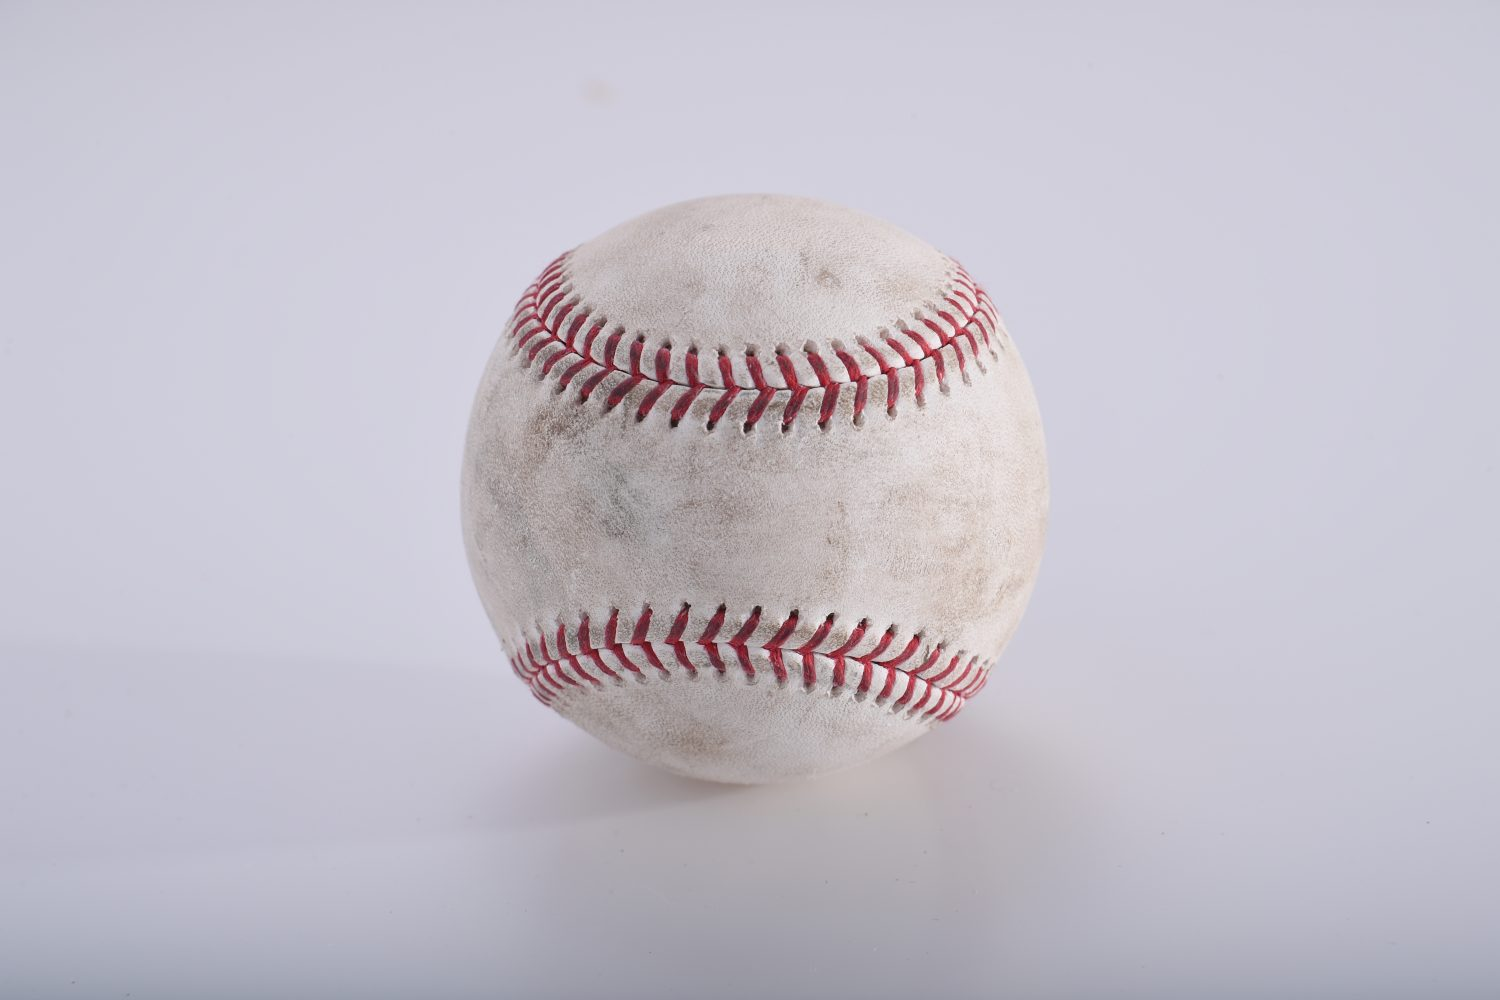 Game-Used Ball from Pete Alonso's First Hit